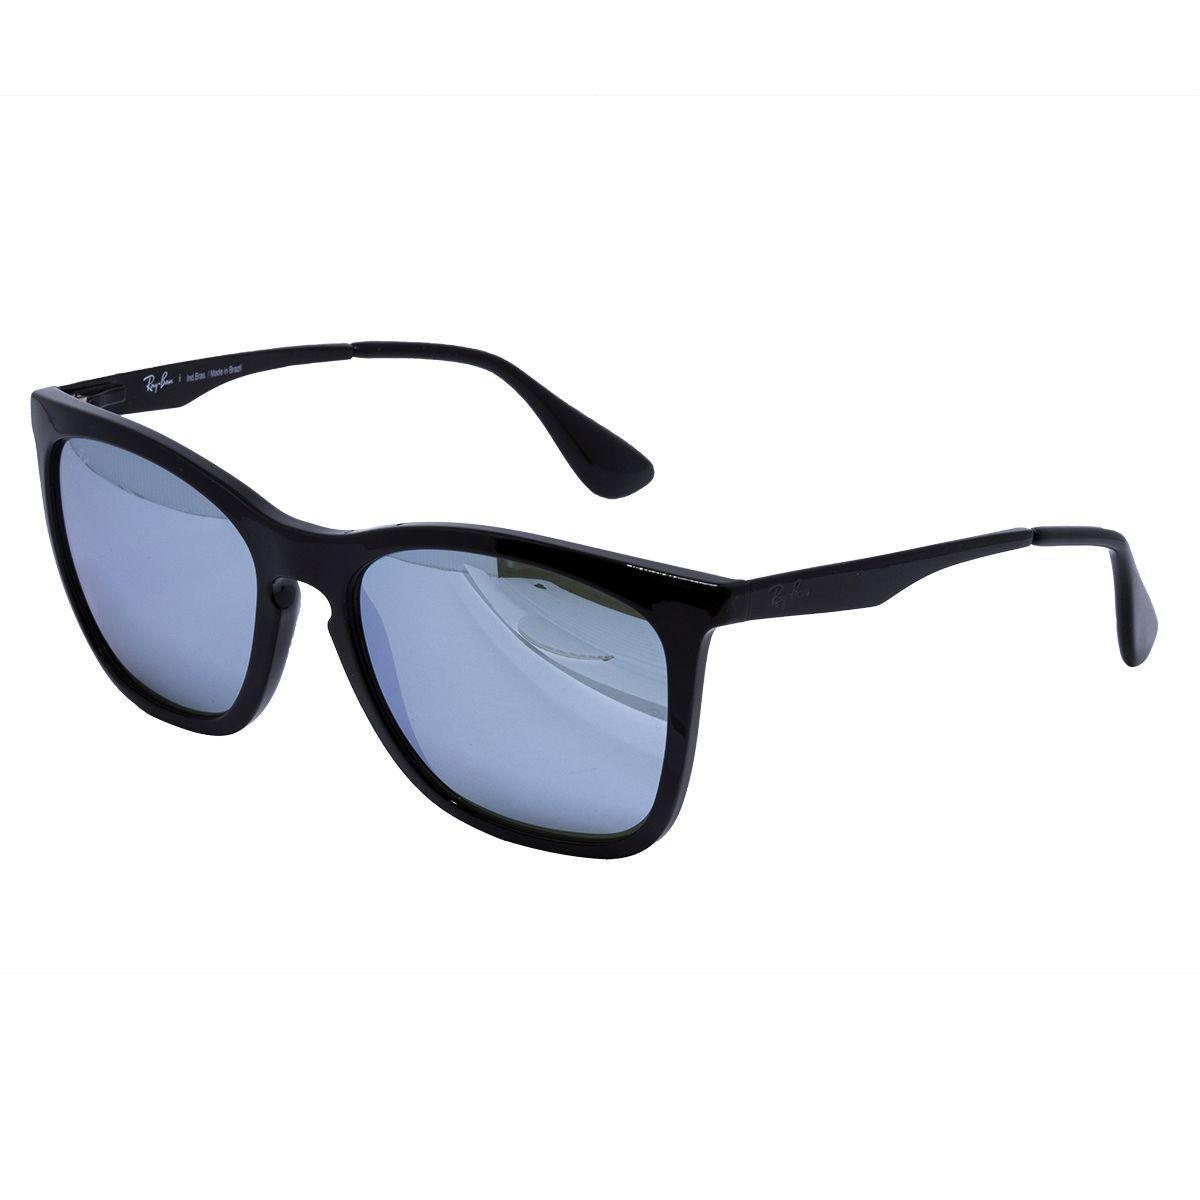 d3b4cf8d9 myfriendstoldmeaboutyou - Guide oculos de sol ray ban masculino ...